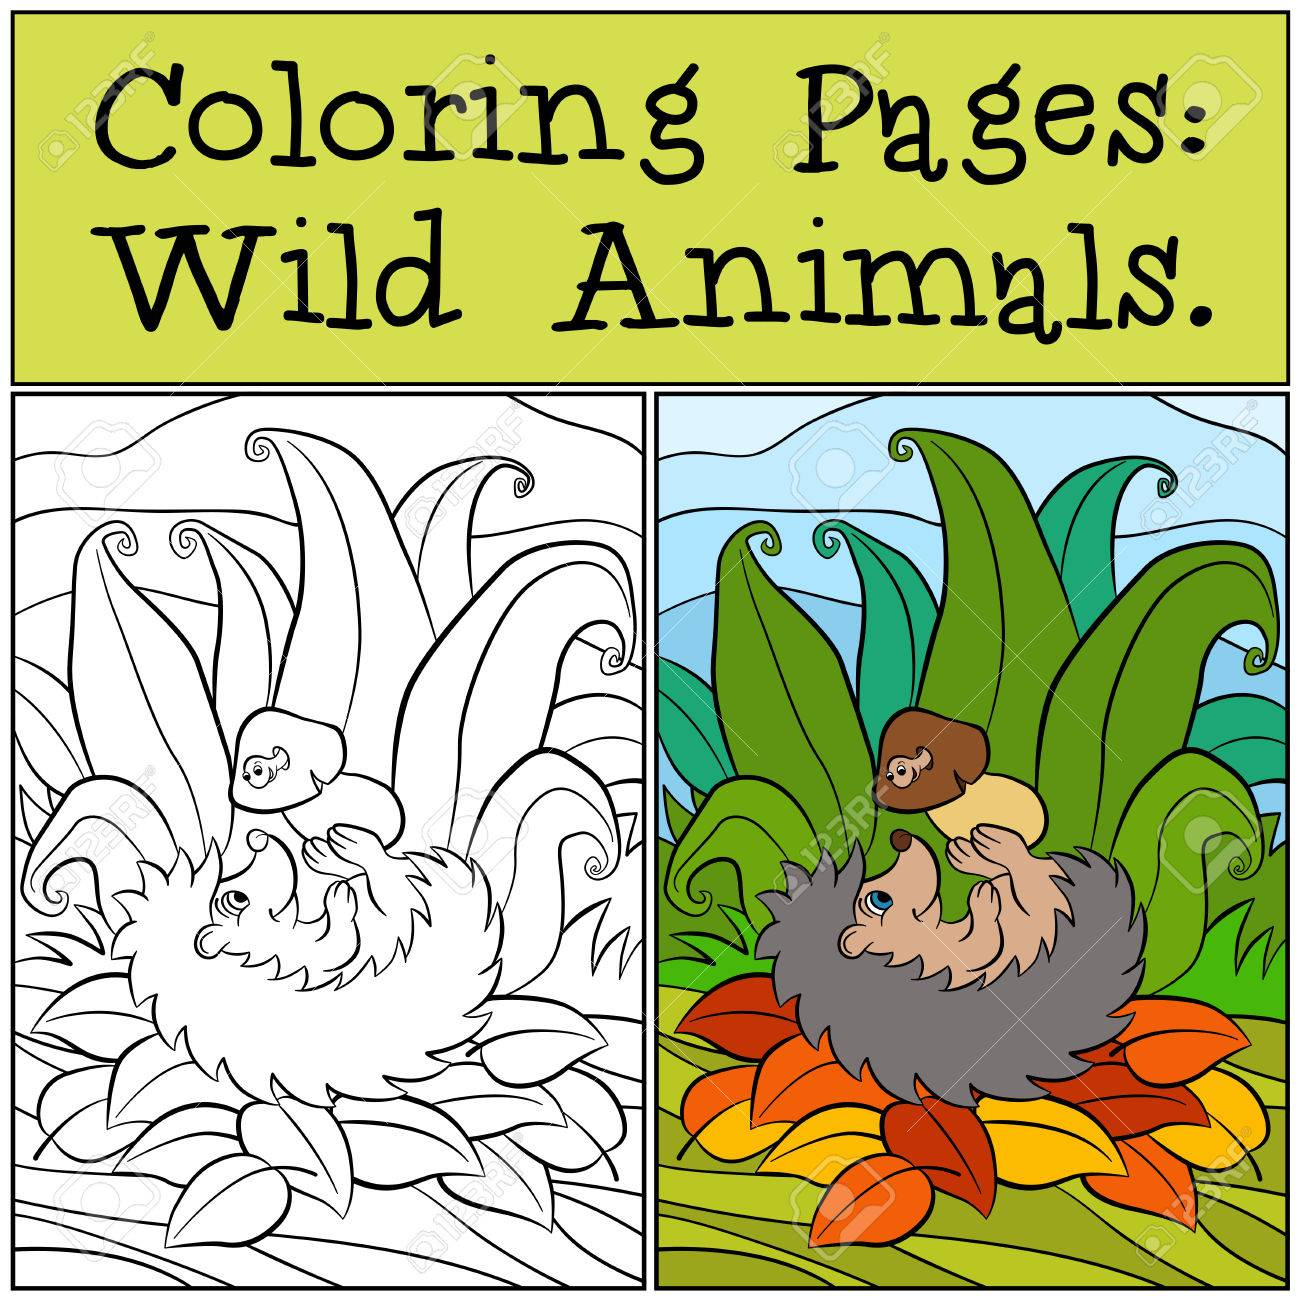 Coloring Pages: Wild Animals. Little Cute Hedgehog Holds The ...